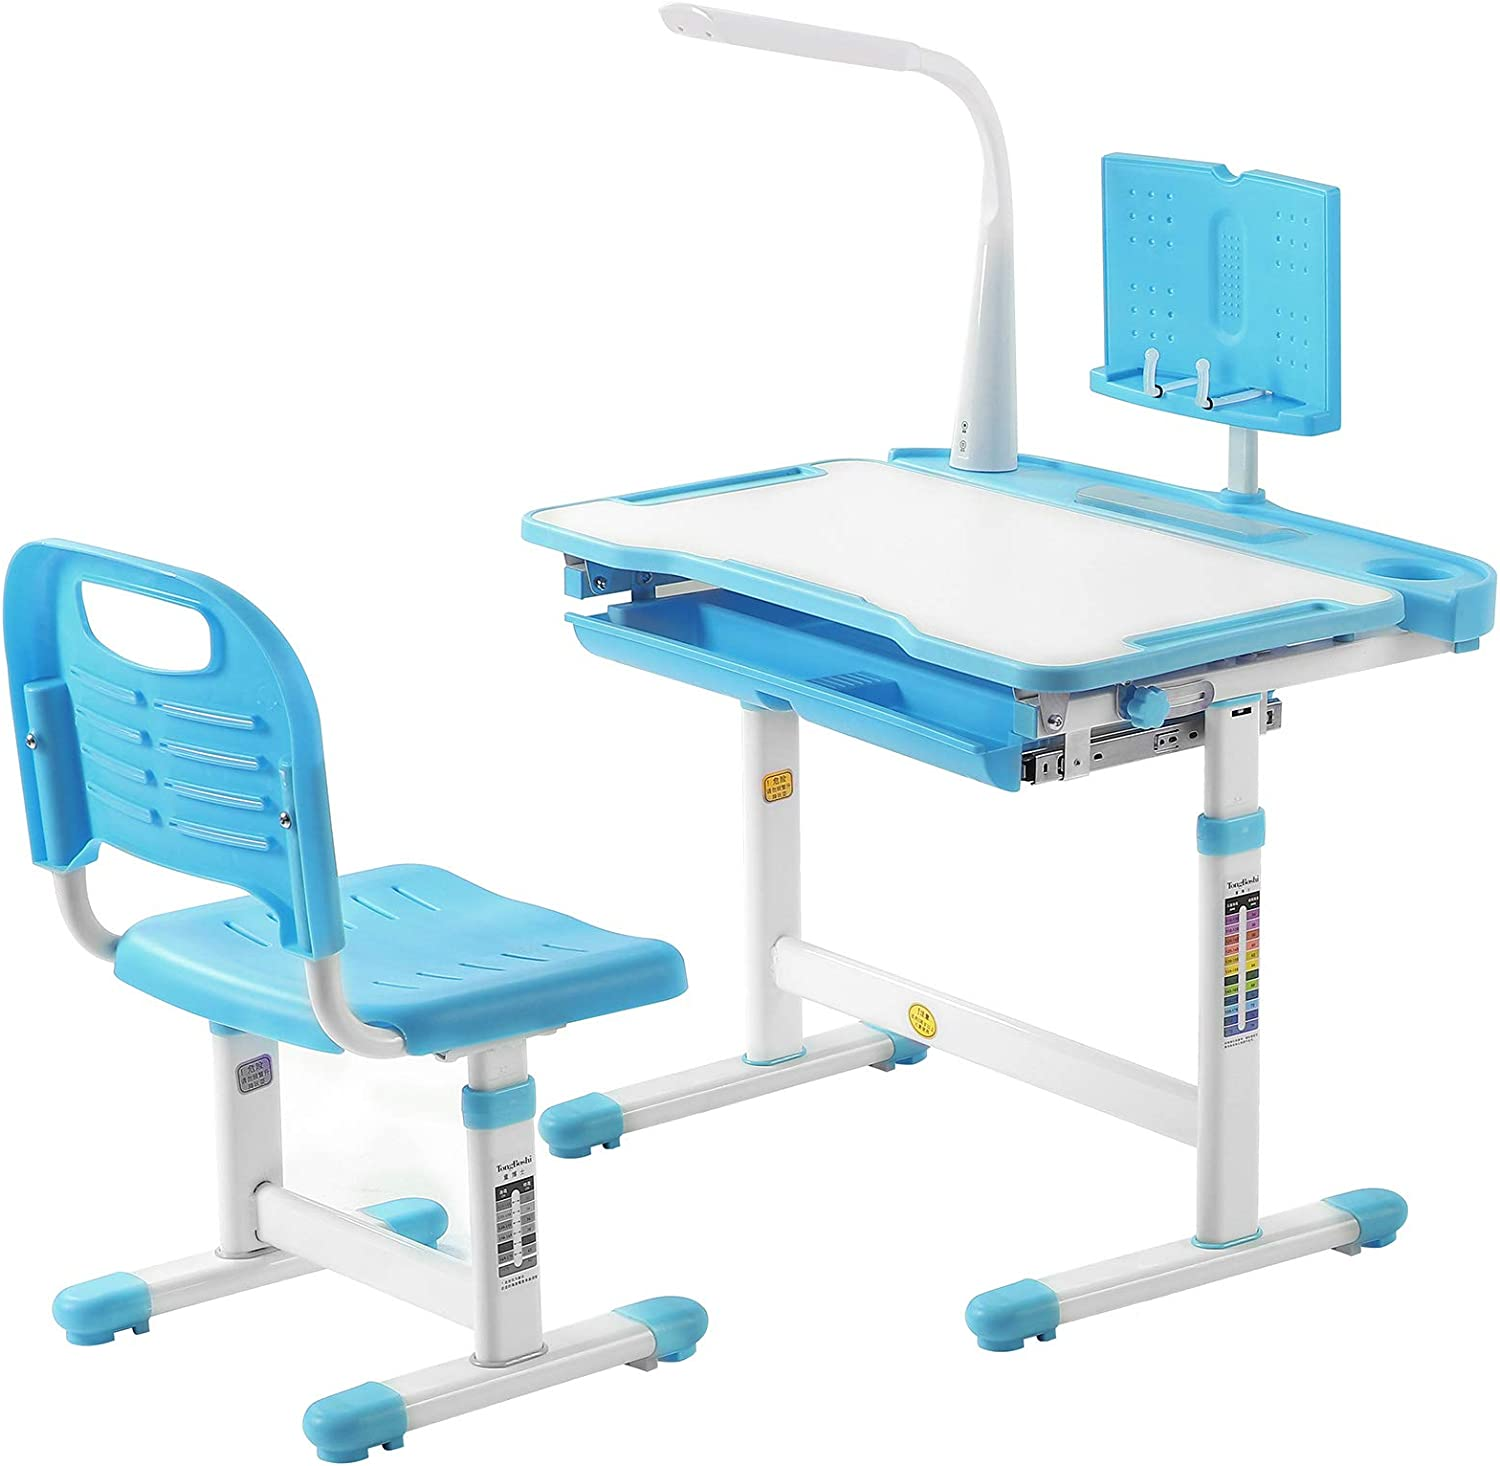 Yougoky Kids Desk and Chair Set Height Adjustable Children Study Table with Light, Ergonomic Home School Use Student Writing Desk, Tilt Desktop with Reading Board and Pull Out Drawer, Blue